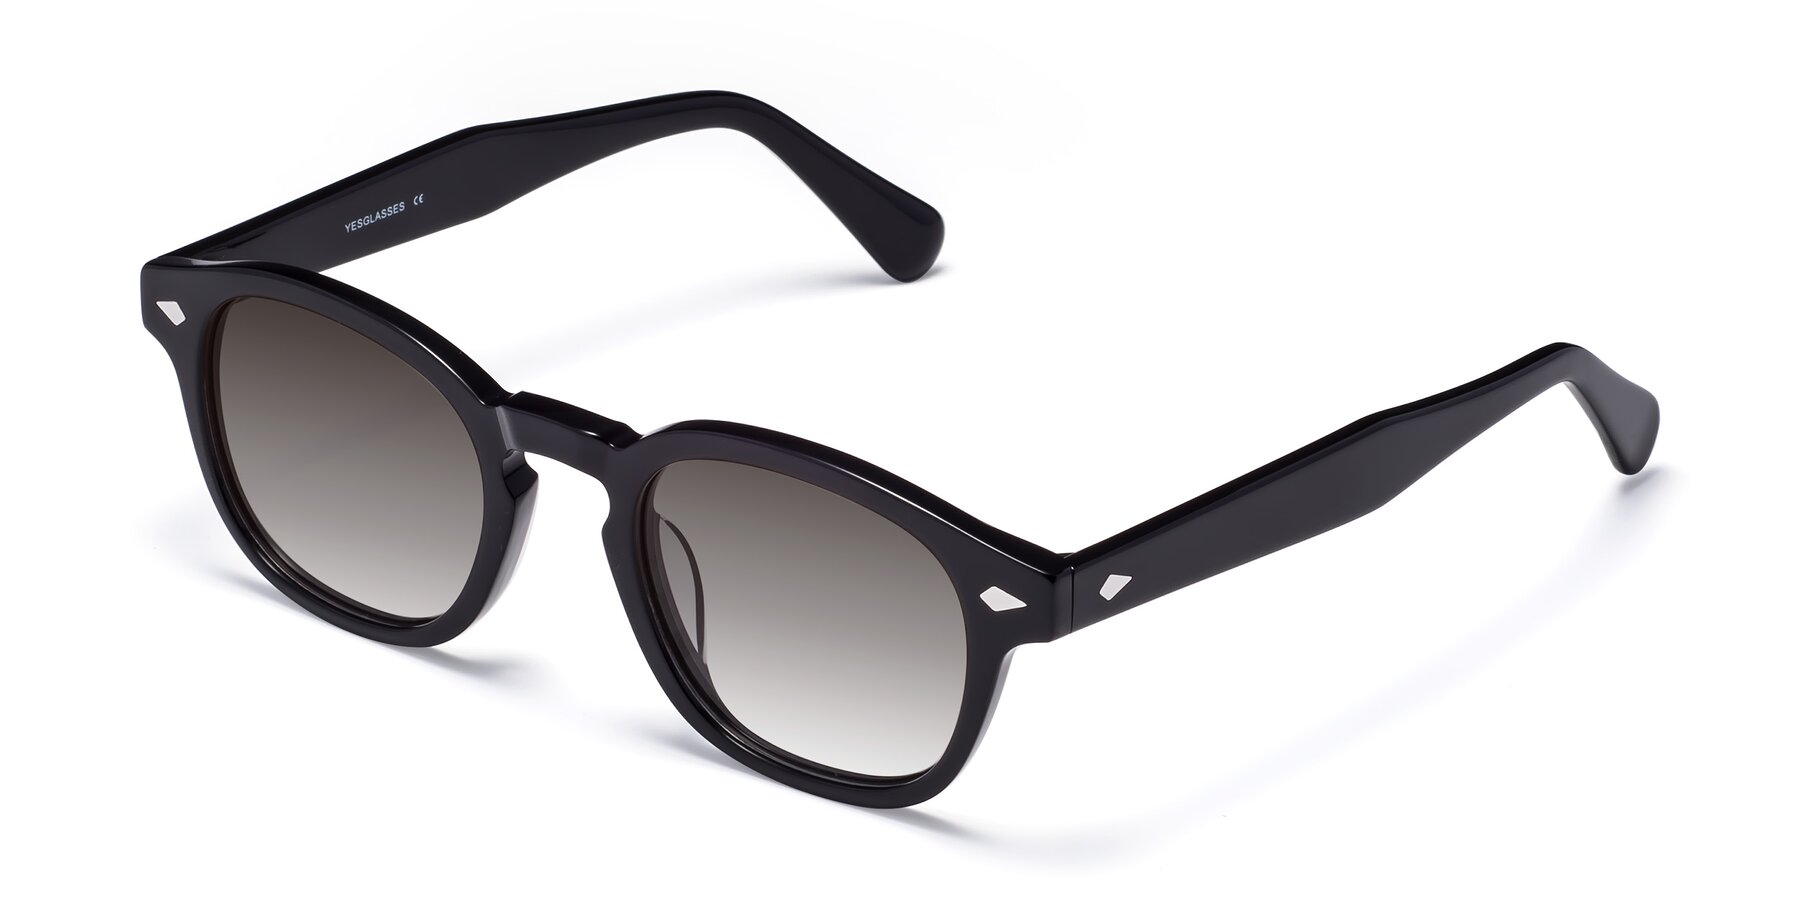 Angle of WALL-E in Black with Gray Gradient Lenses